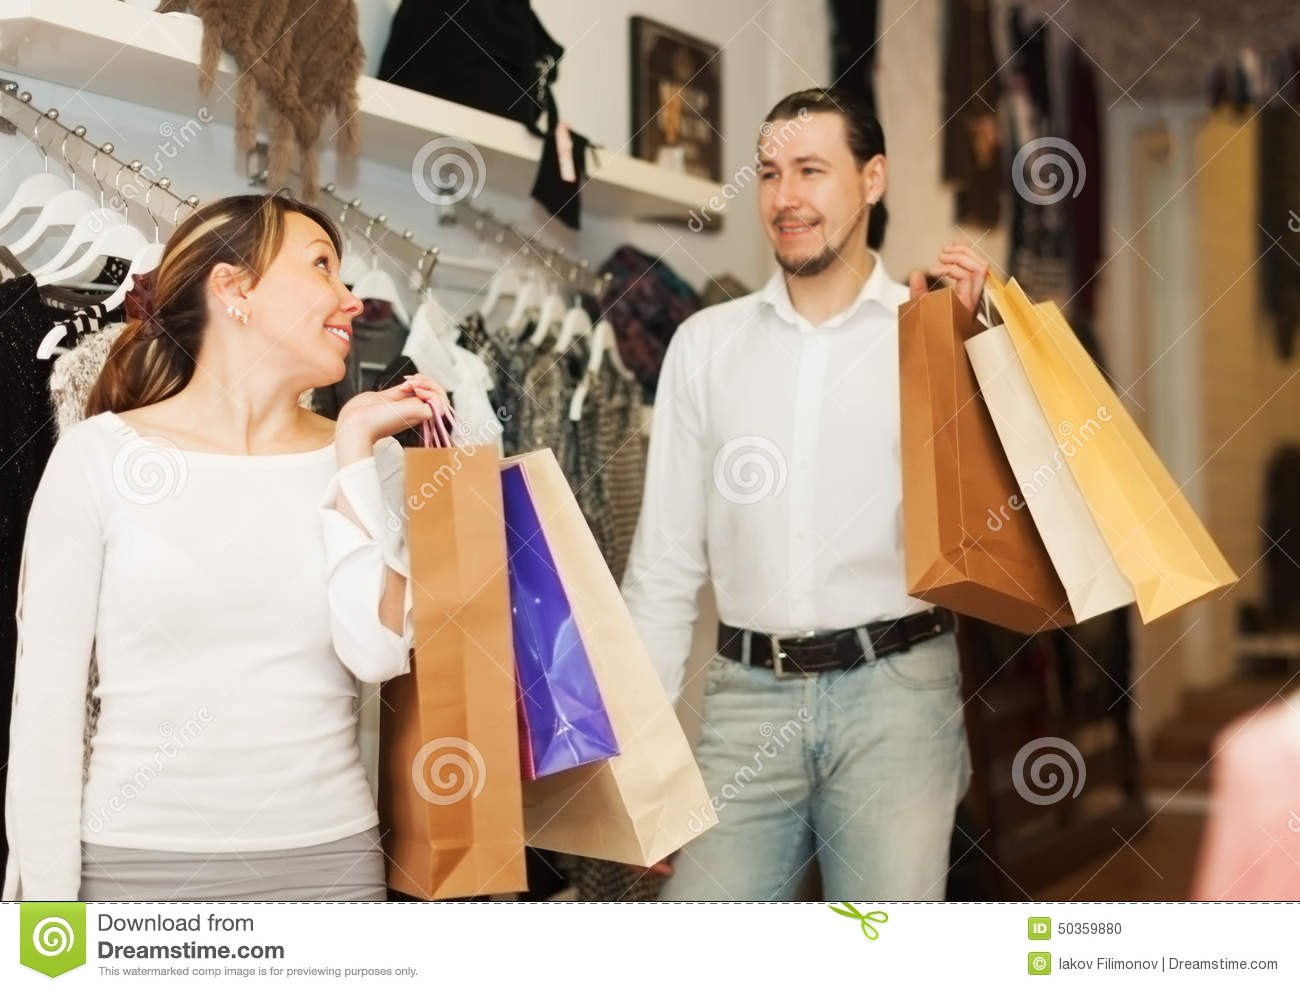 Couple with shopping bags at clothing store together